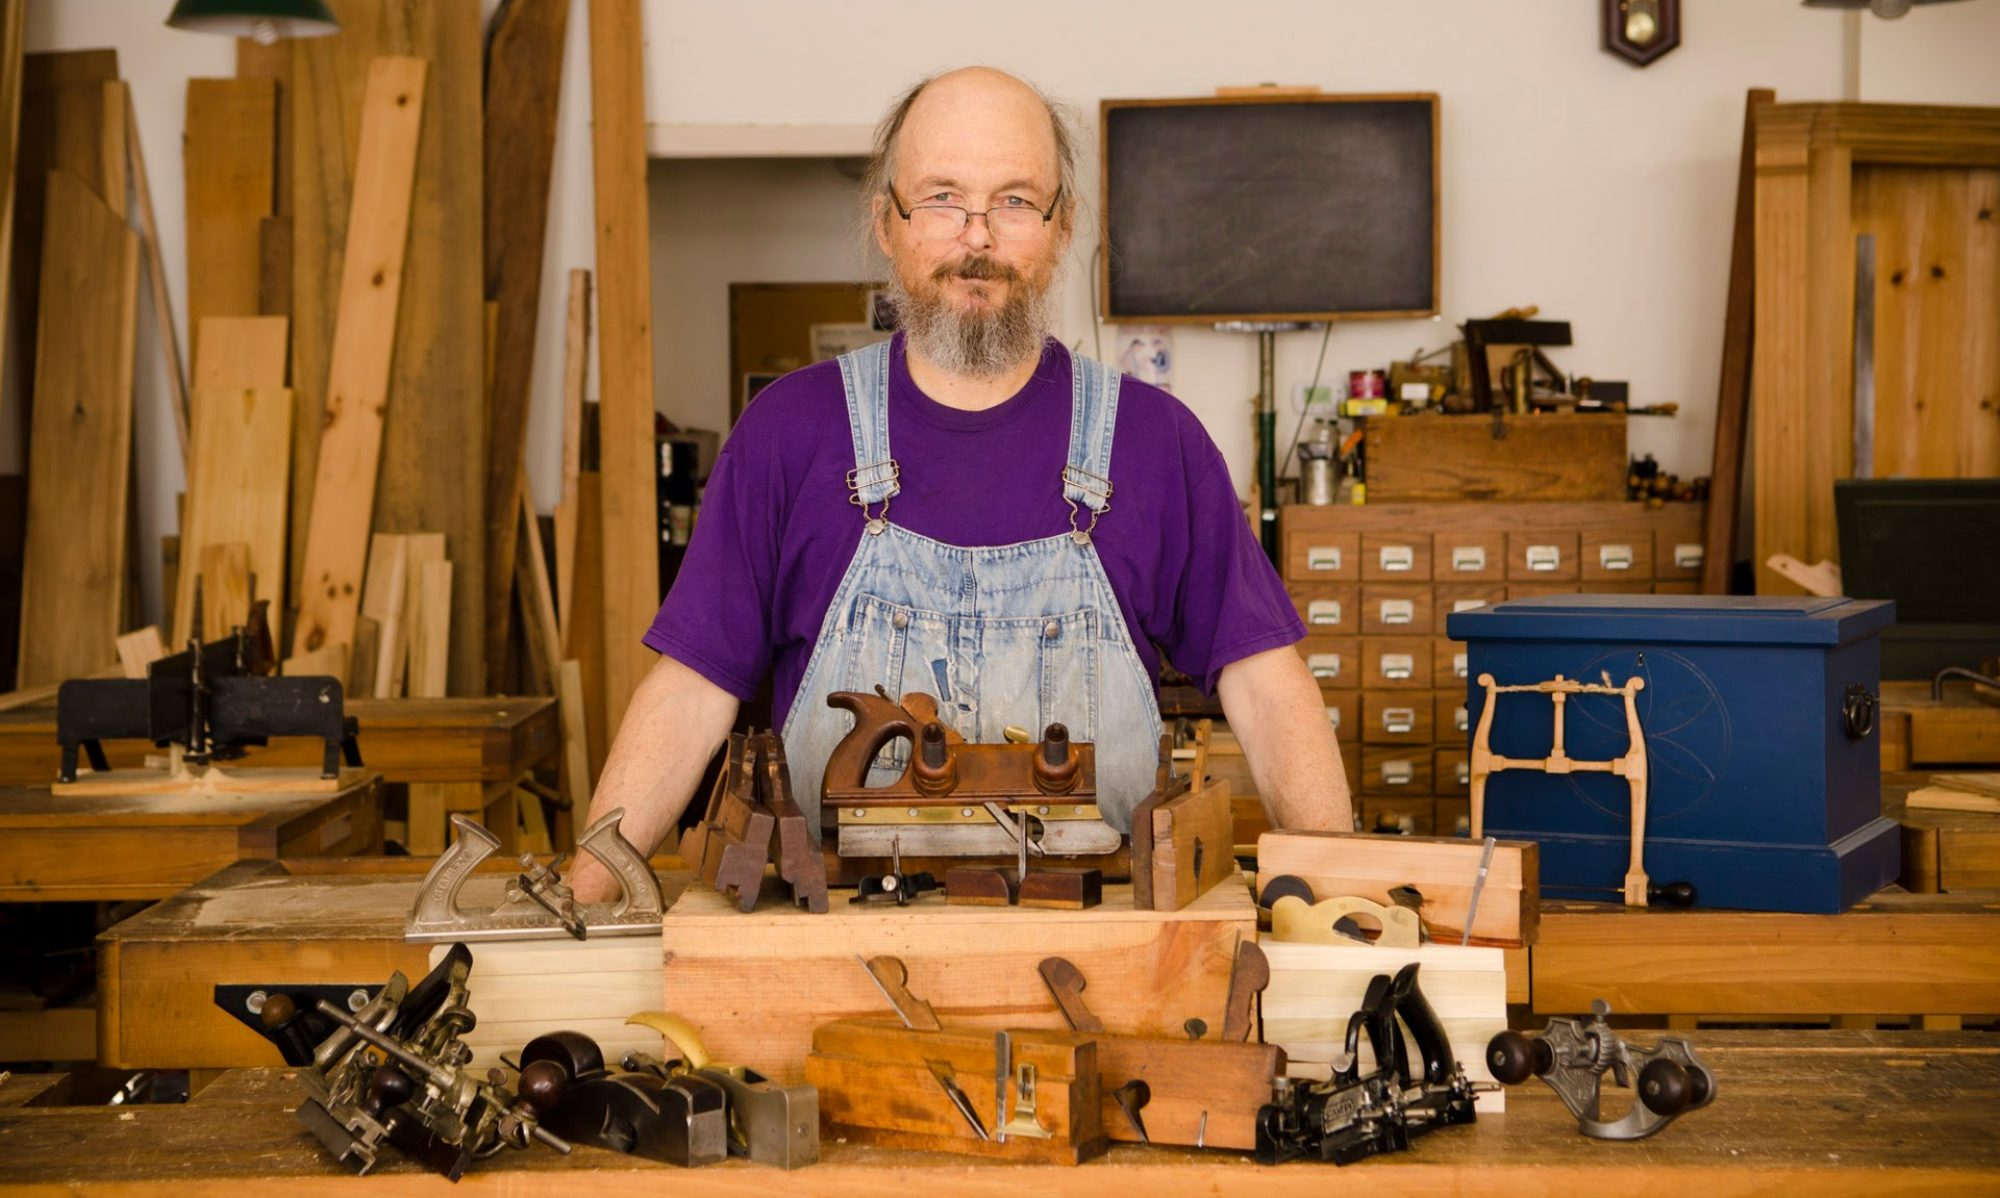 About Edwards Mountain Woodworks